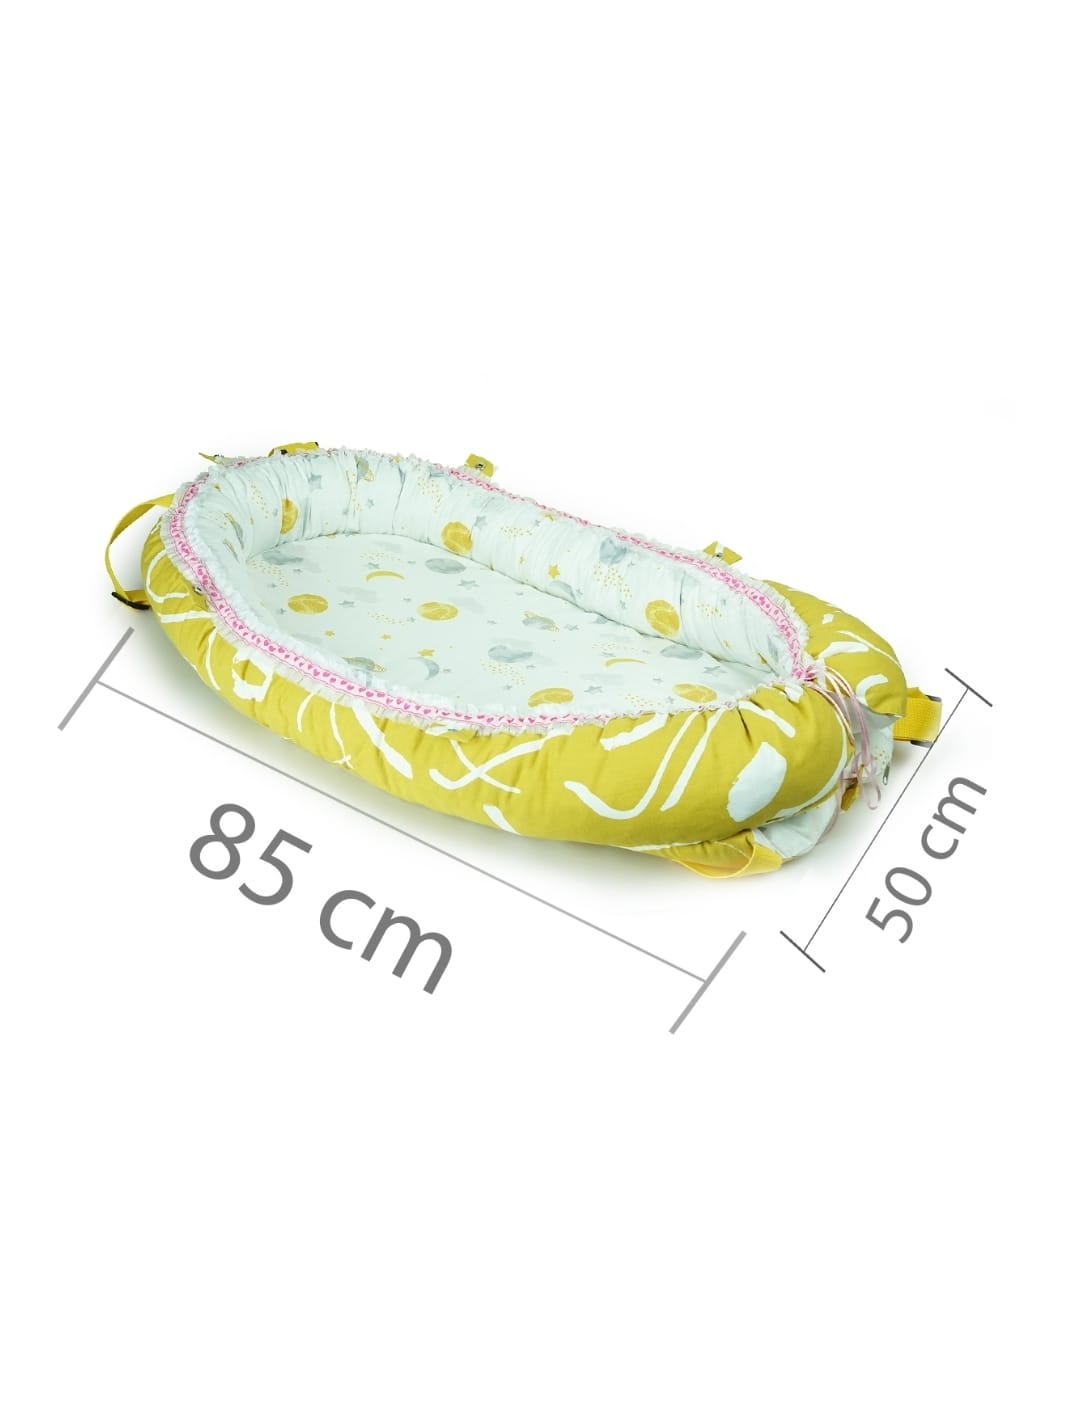 85*50 Cm Babynest Bed With Pillow Portable Crib Travel Bag Newborn Sleep Swaddle Cotton Fabric Has a Usage Range of 0-2 Years enlarge